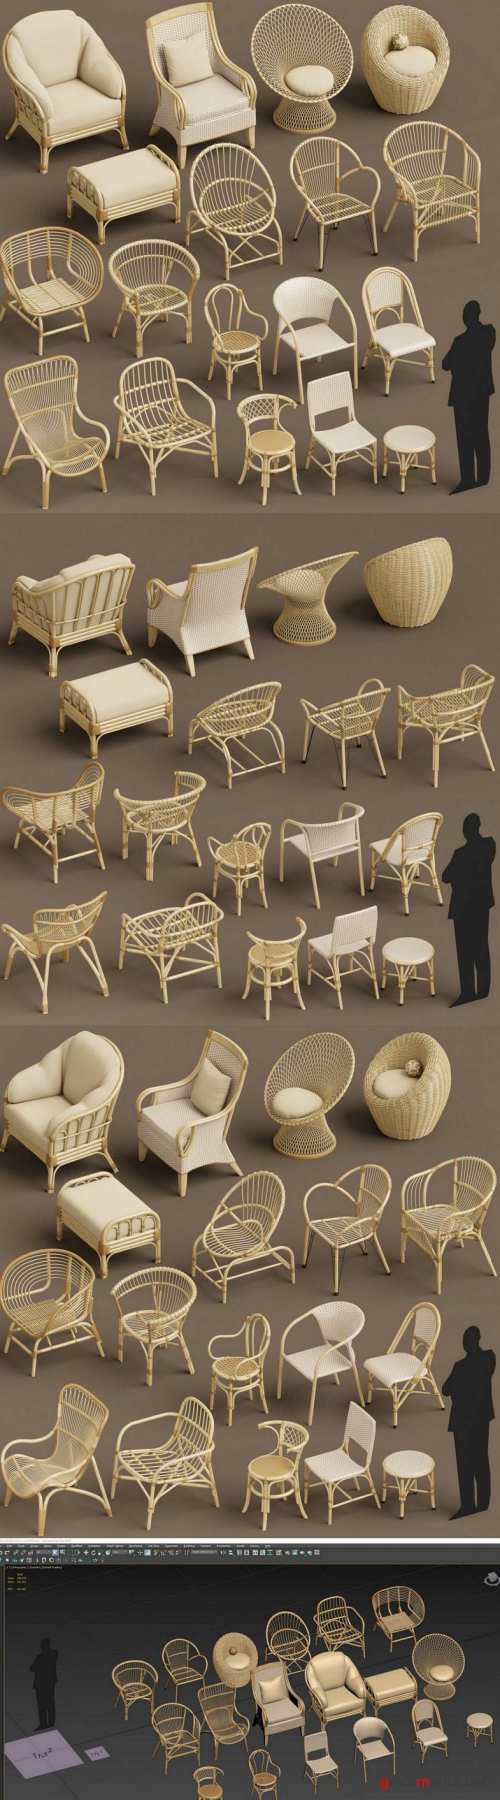 Cgtrader – Wicker chair set A 3D model 3D model